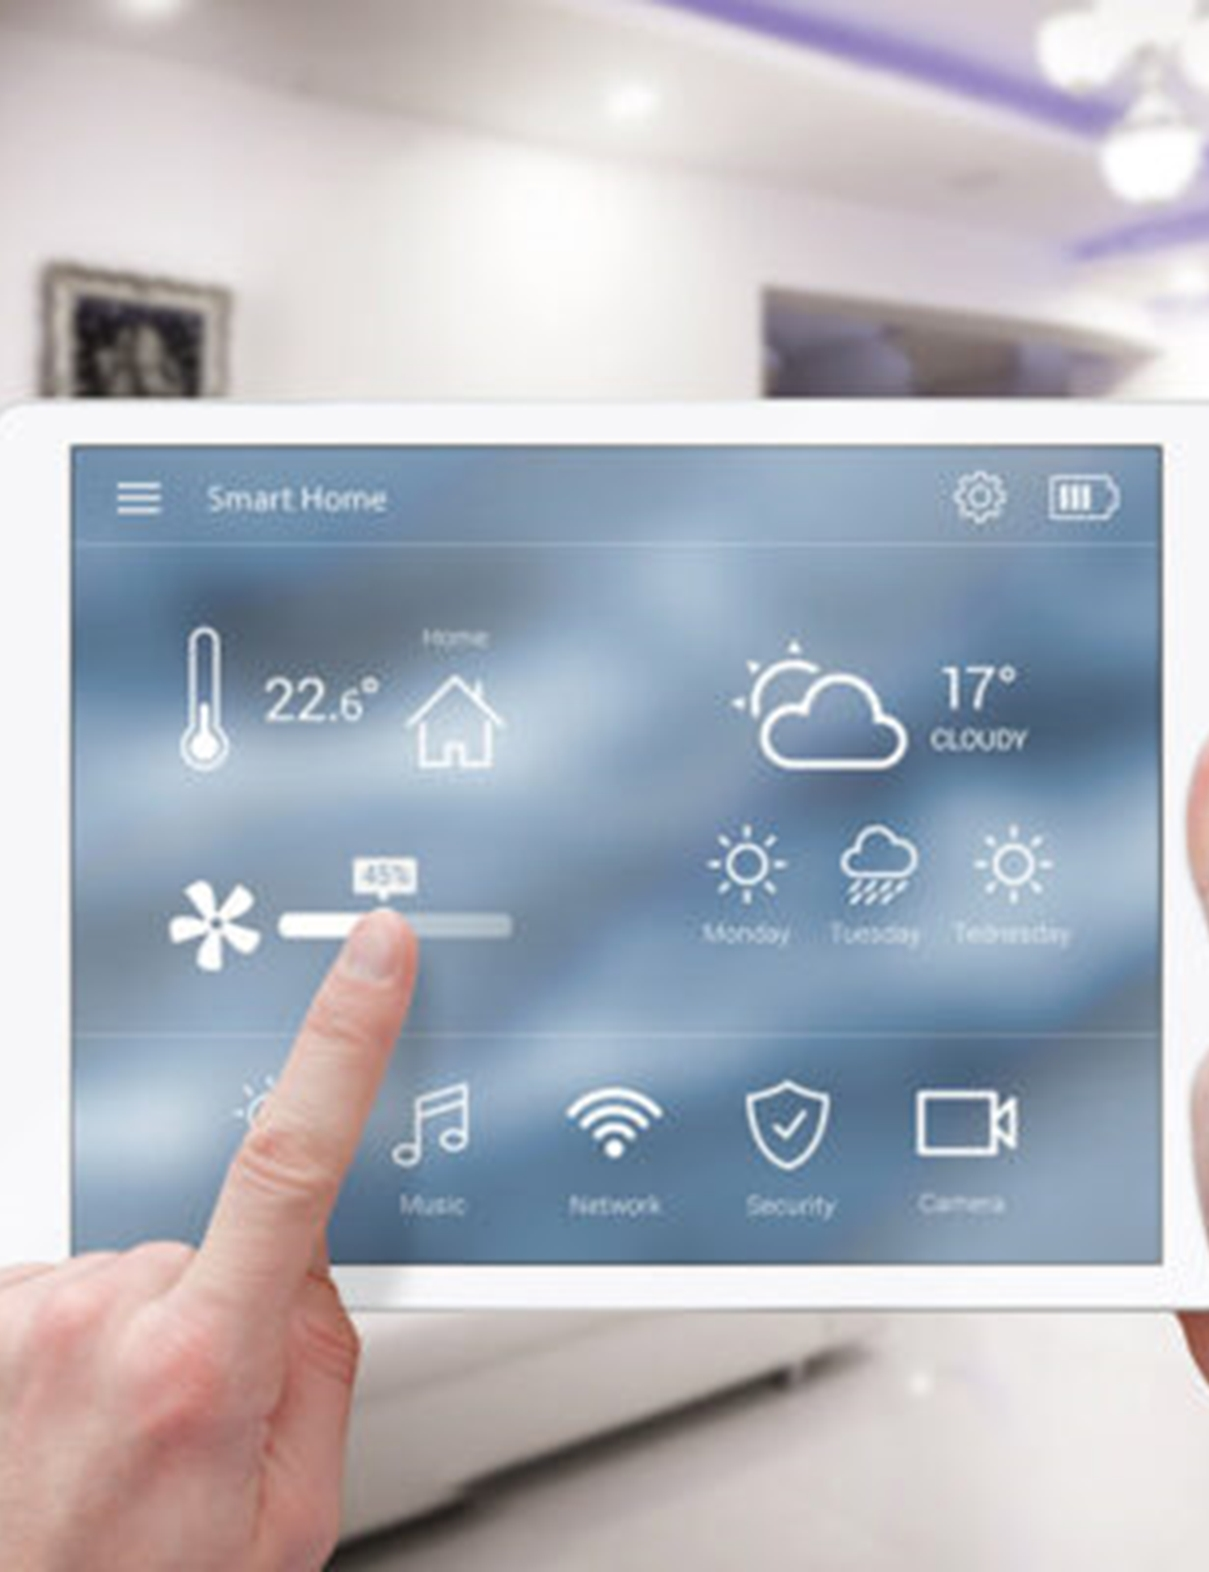 smart home automation being controlled on a tablet